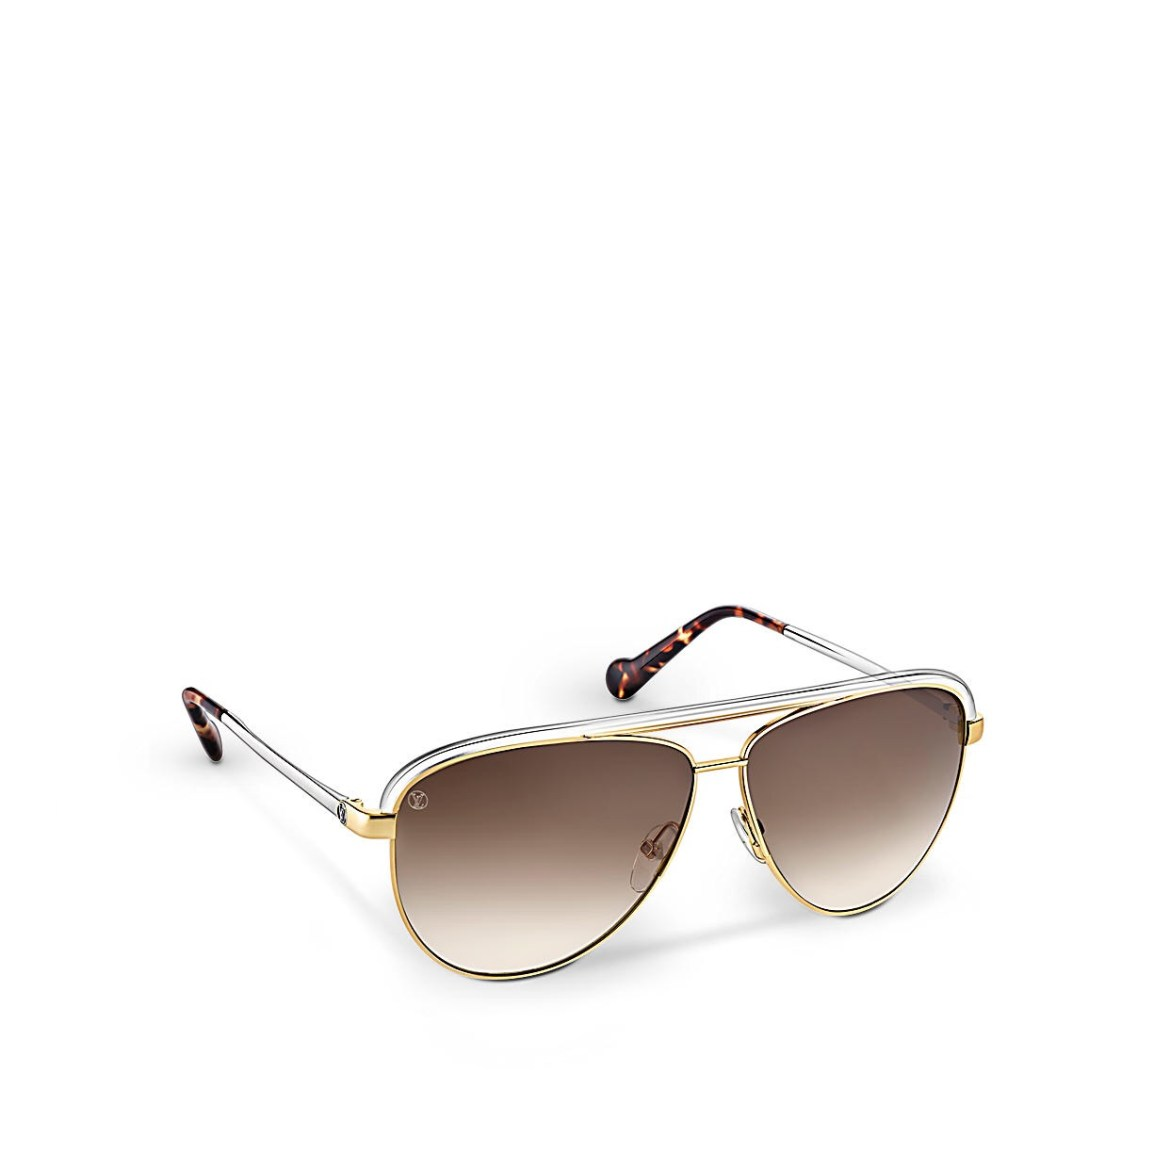 louis vuitton jet set sunglasses